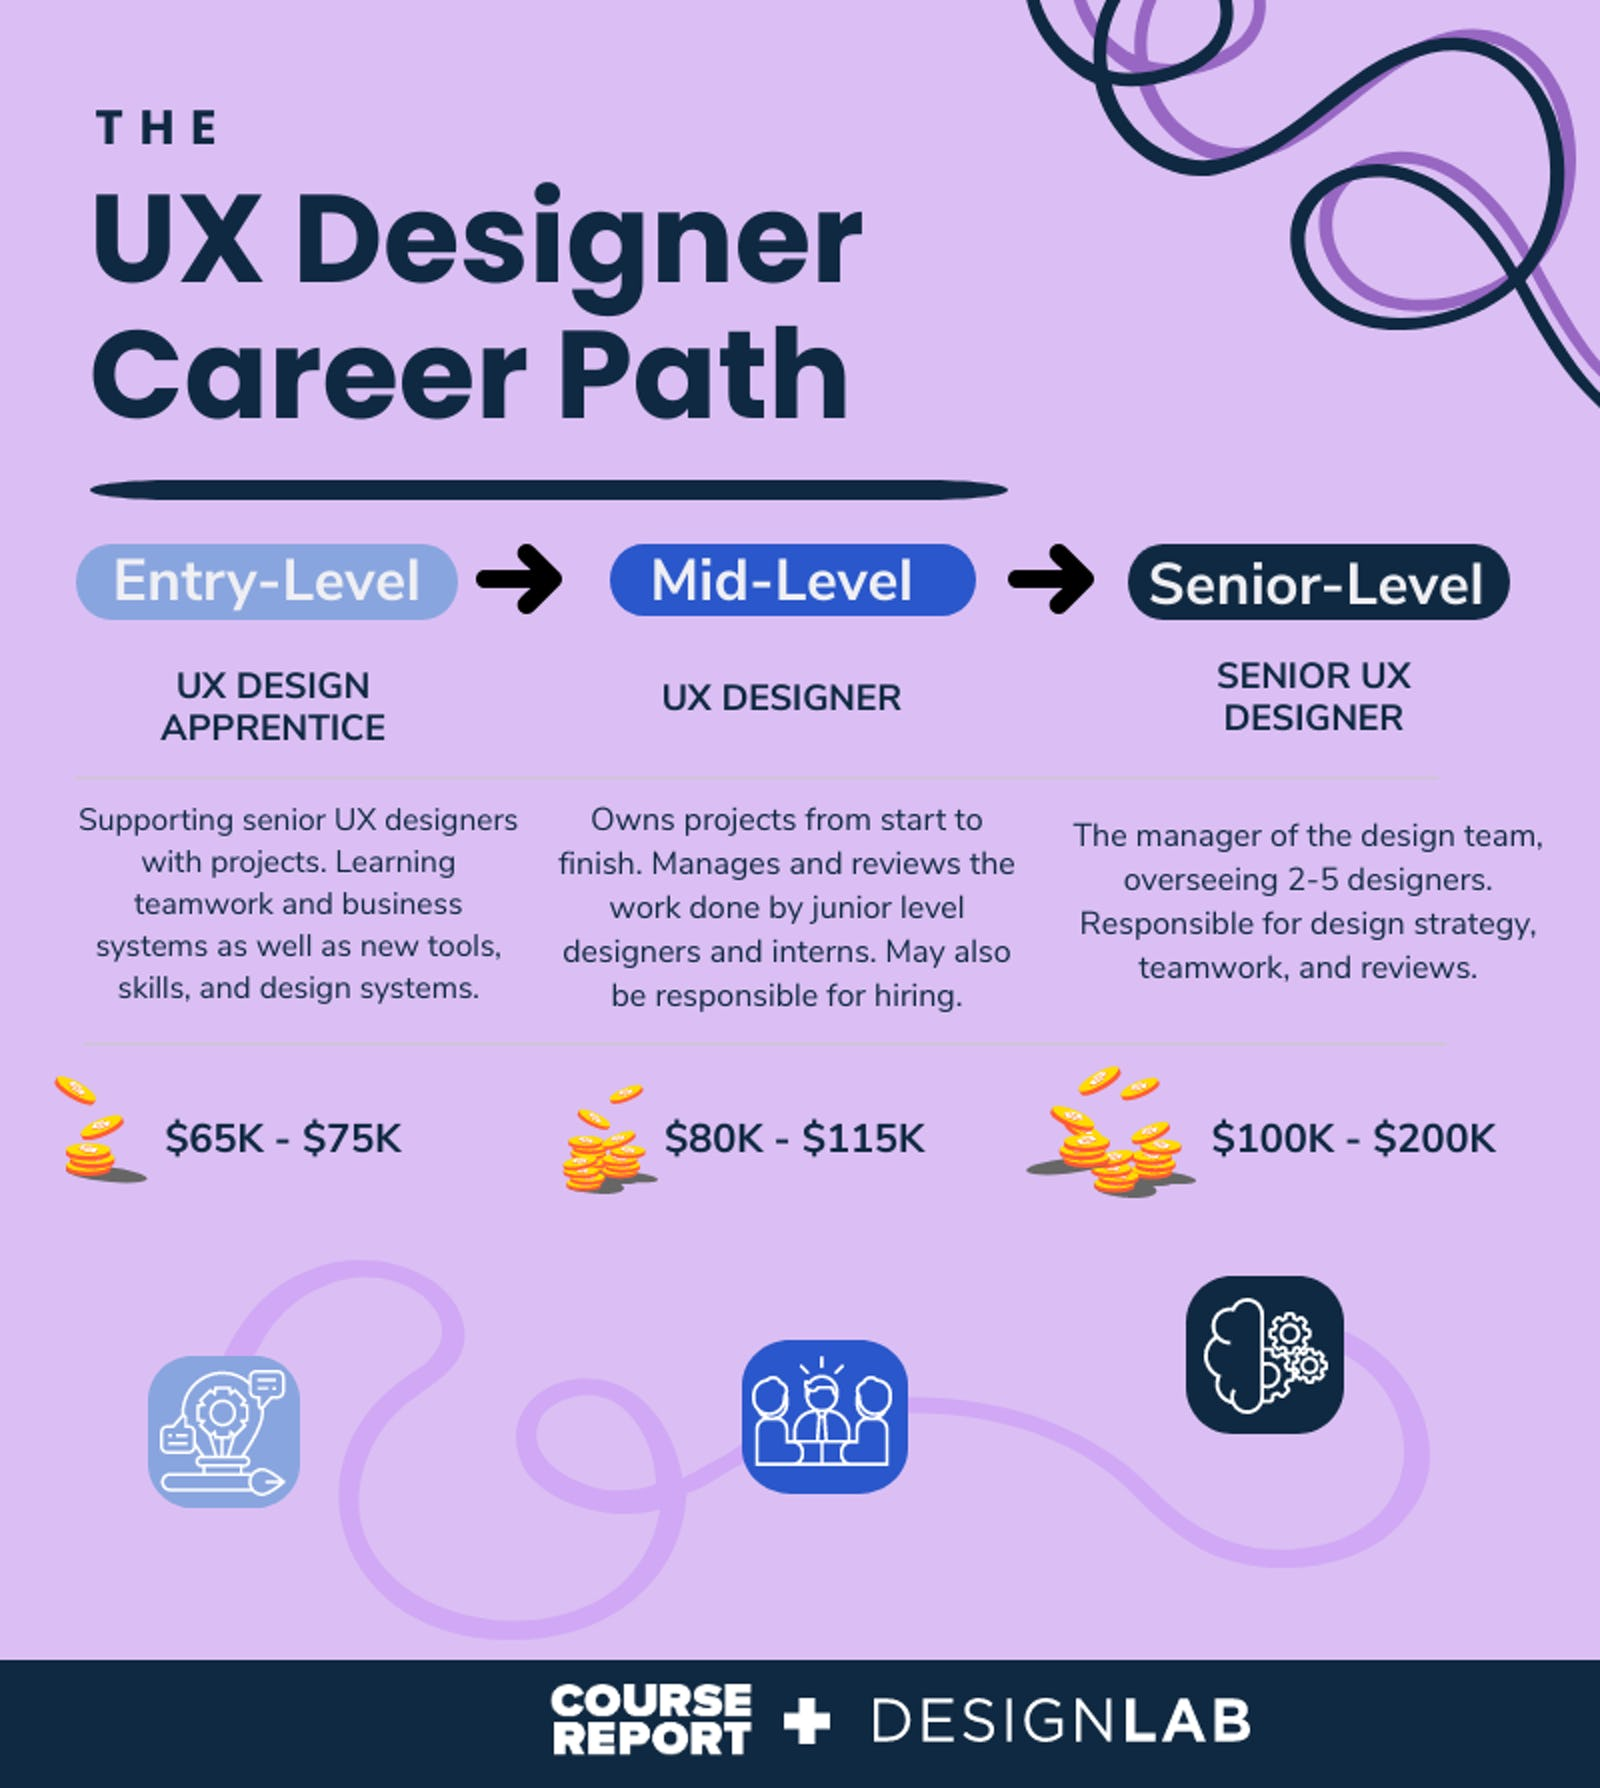 The UX Designer Career Path - Entry, Mid and Senior Level